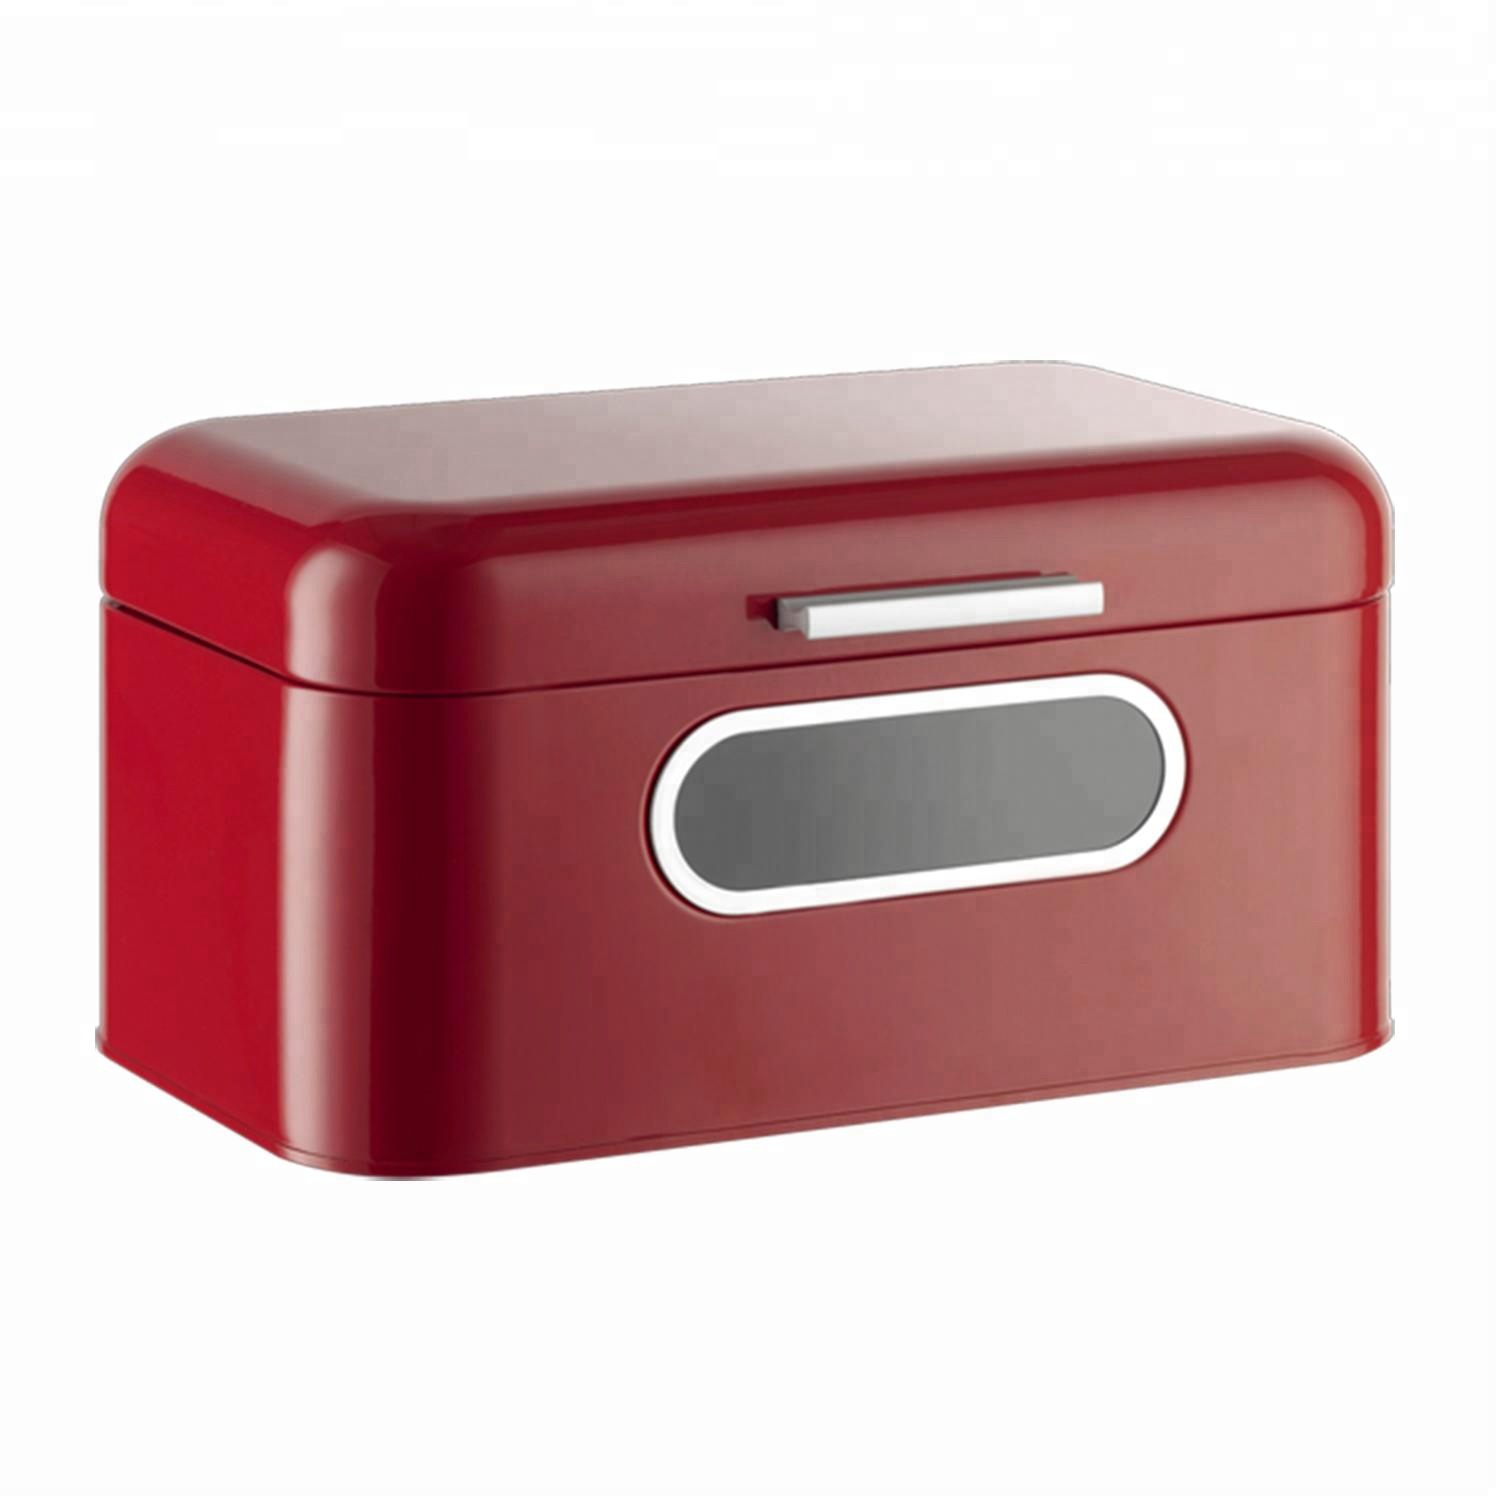 Kitchen Counter Bread Box   - Red Bread Bin, Retro Storage Container with Front Window, For Doughnuts, Pastries, Cookies